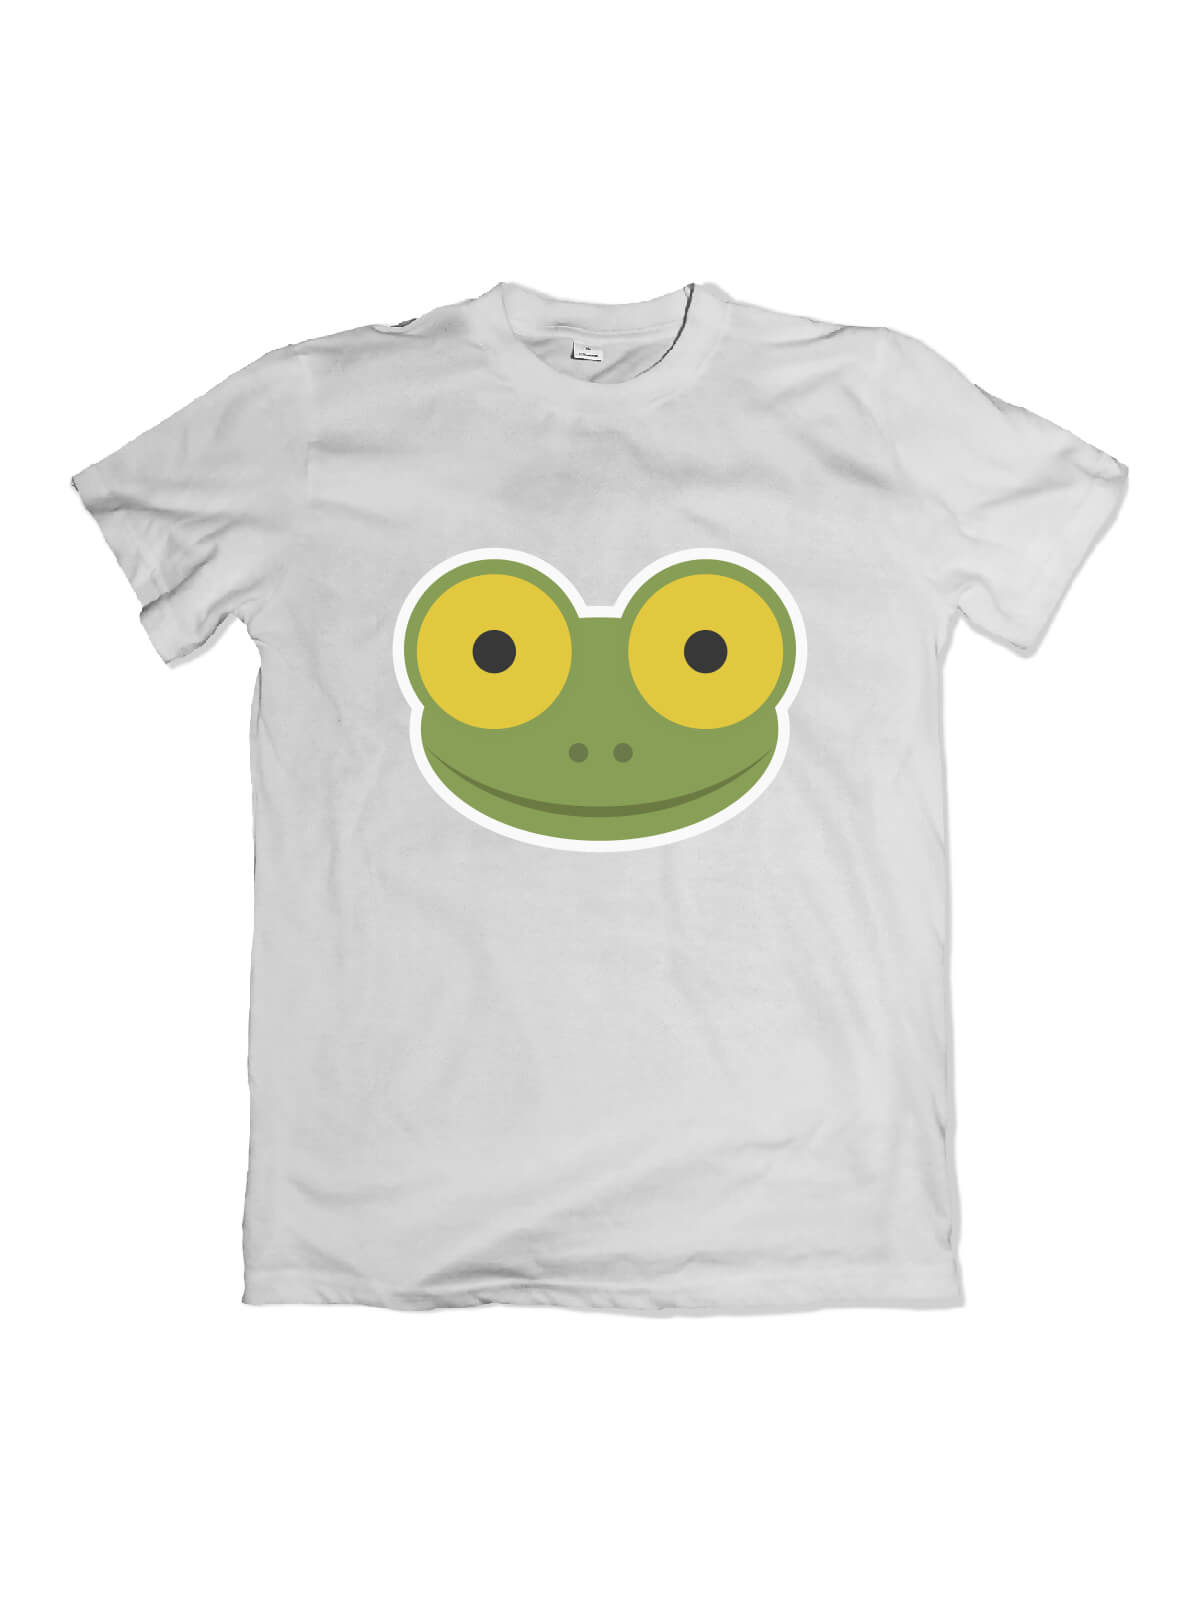 white t-shirt with Mike the frog face